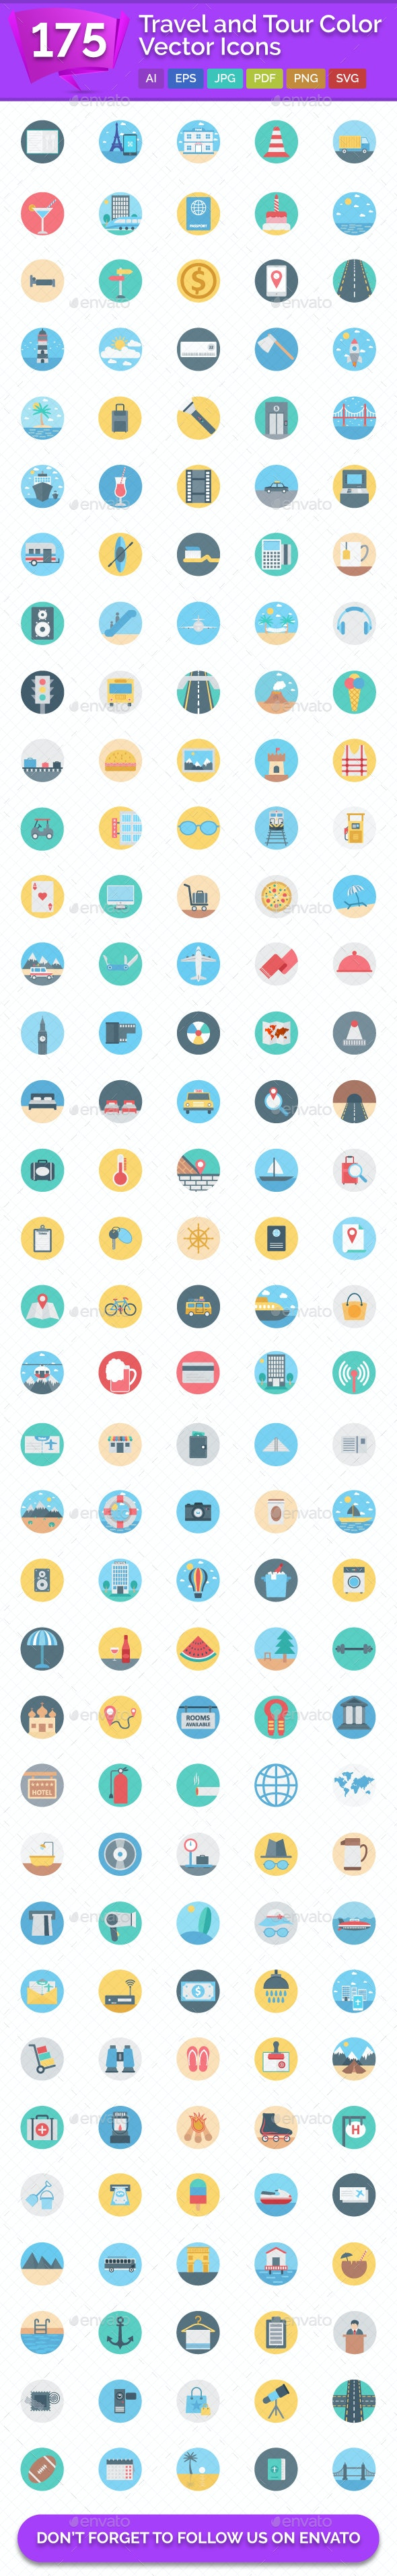 175 Travel and Tour Color Vector Icons - Icons